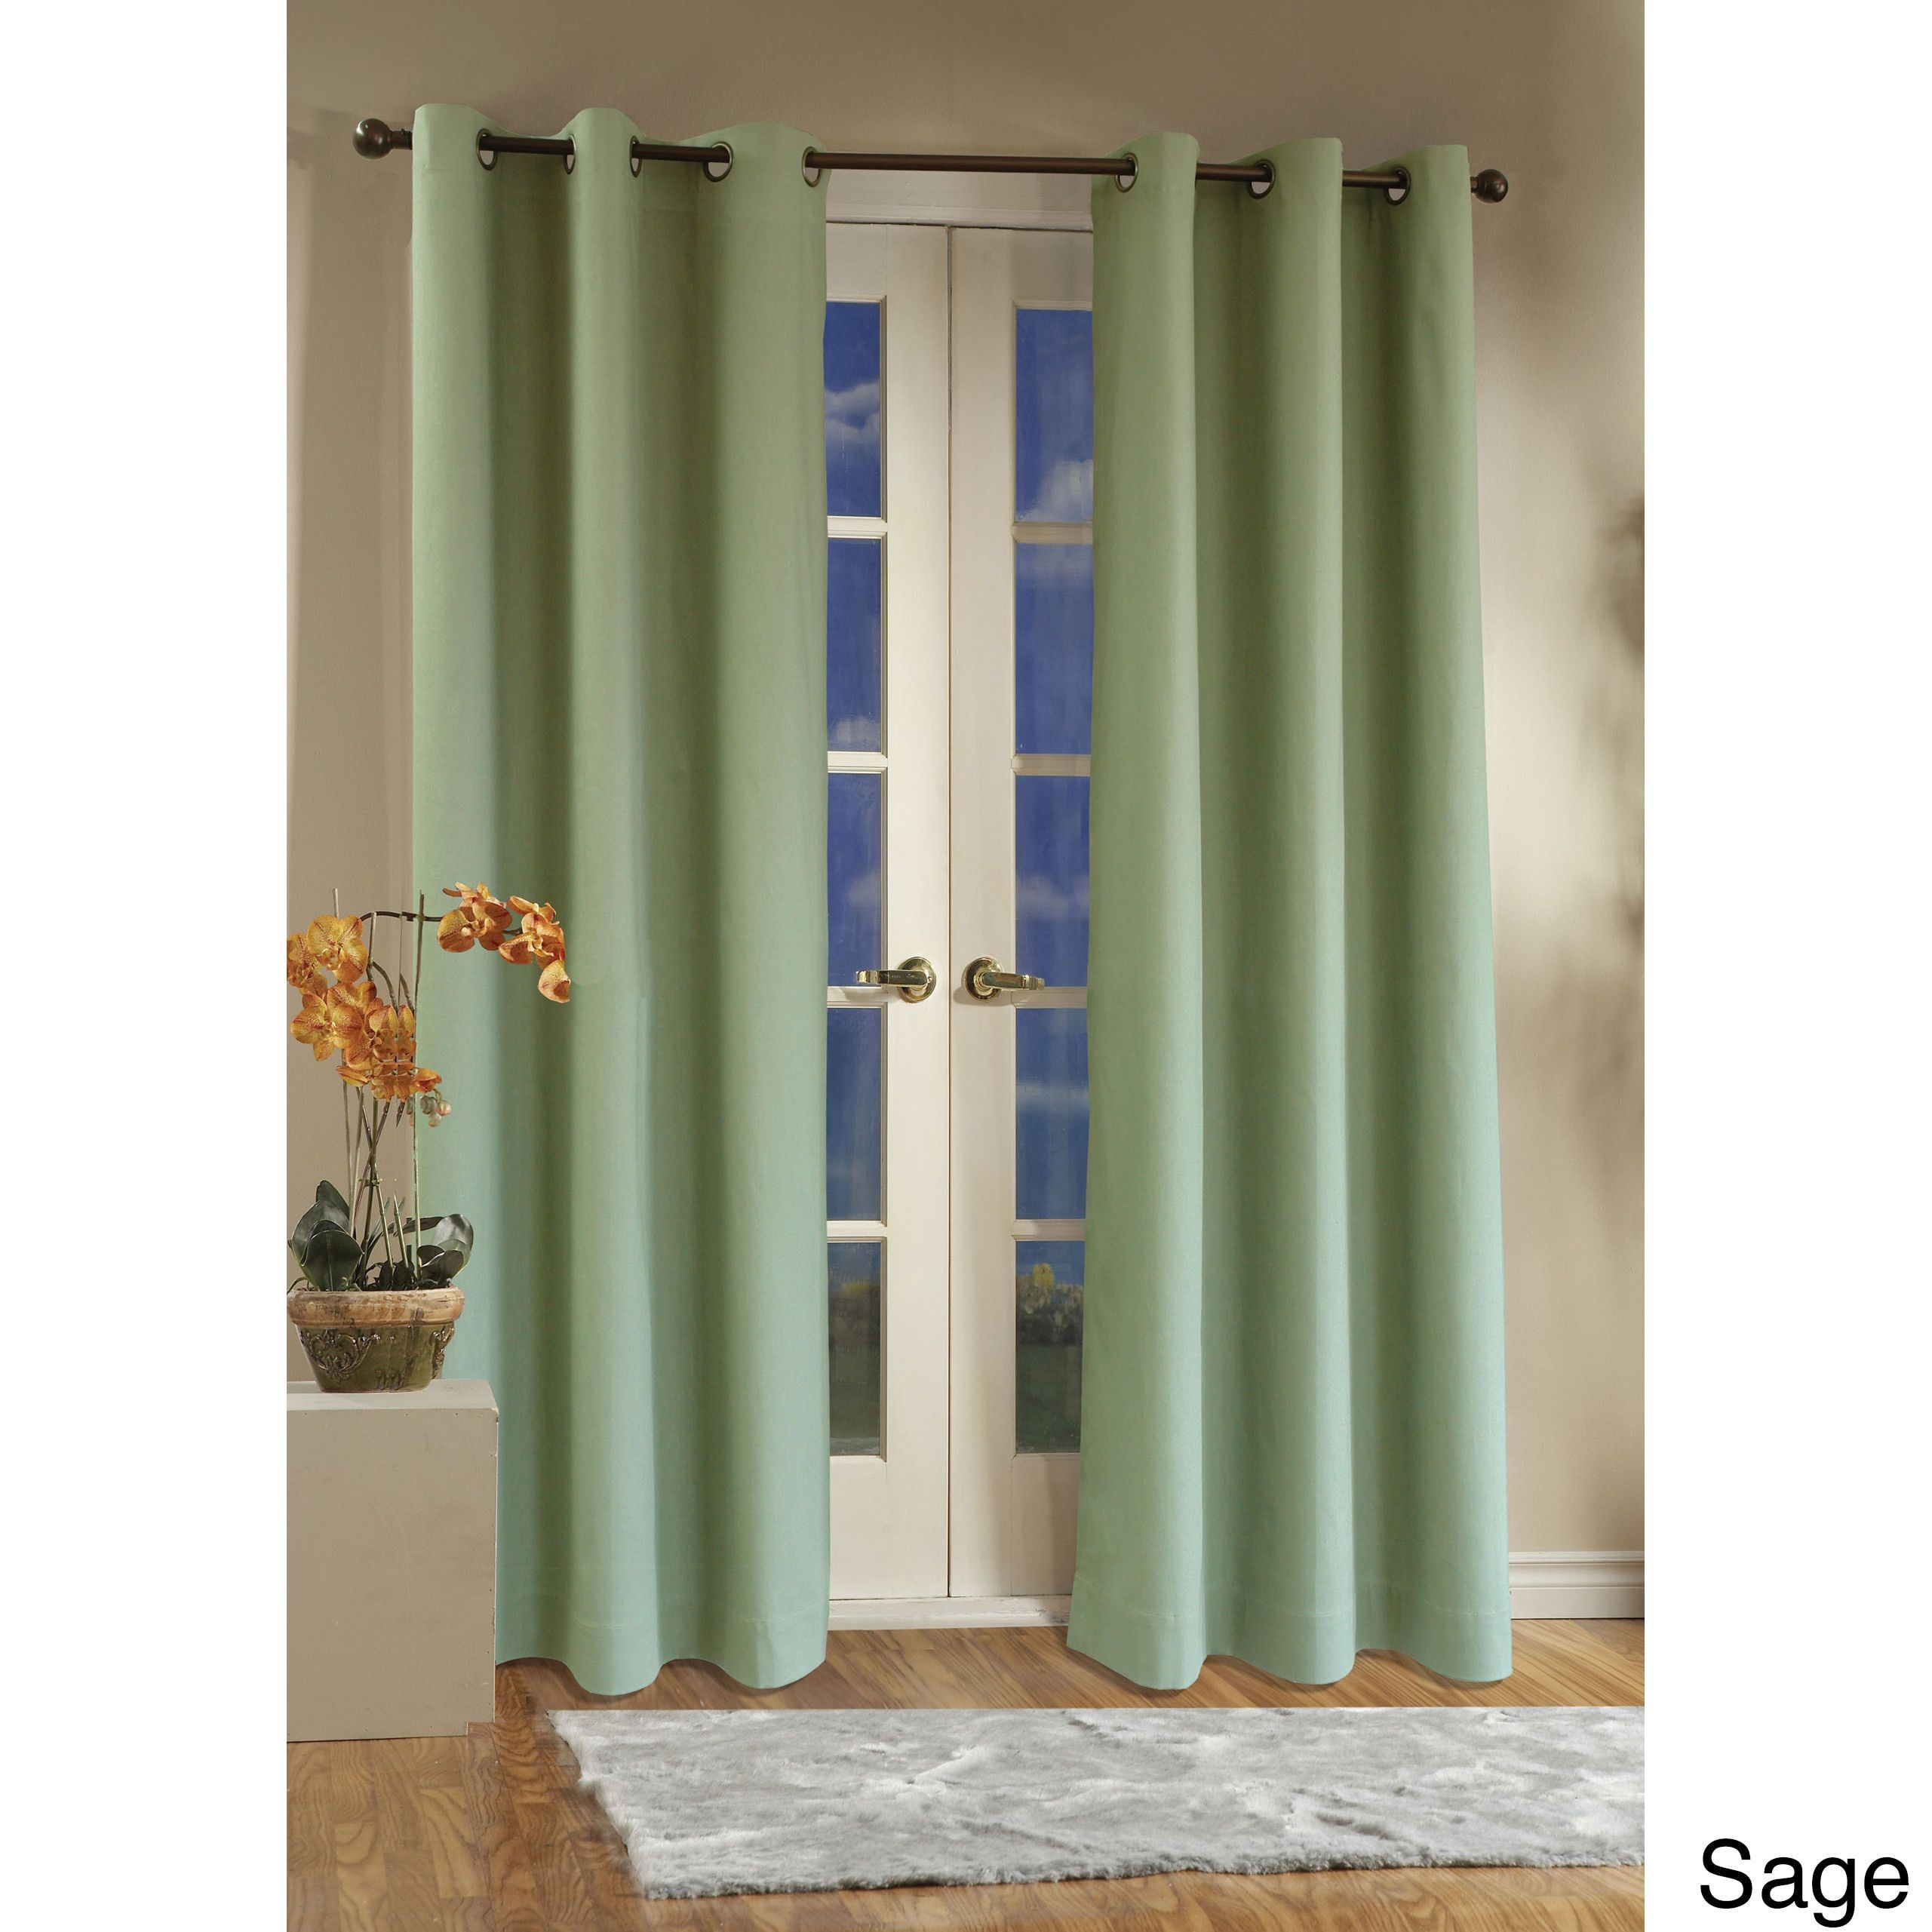 Thermalogic Weathermate Insulated Grommet Curtain Panel Pair Intended For Insulated Cotton Curtain Panel Pairs (View 16 of 20)